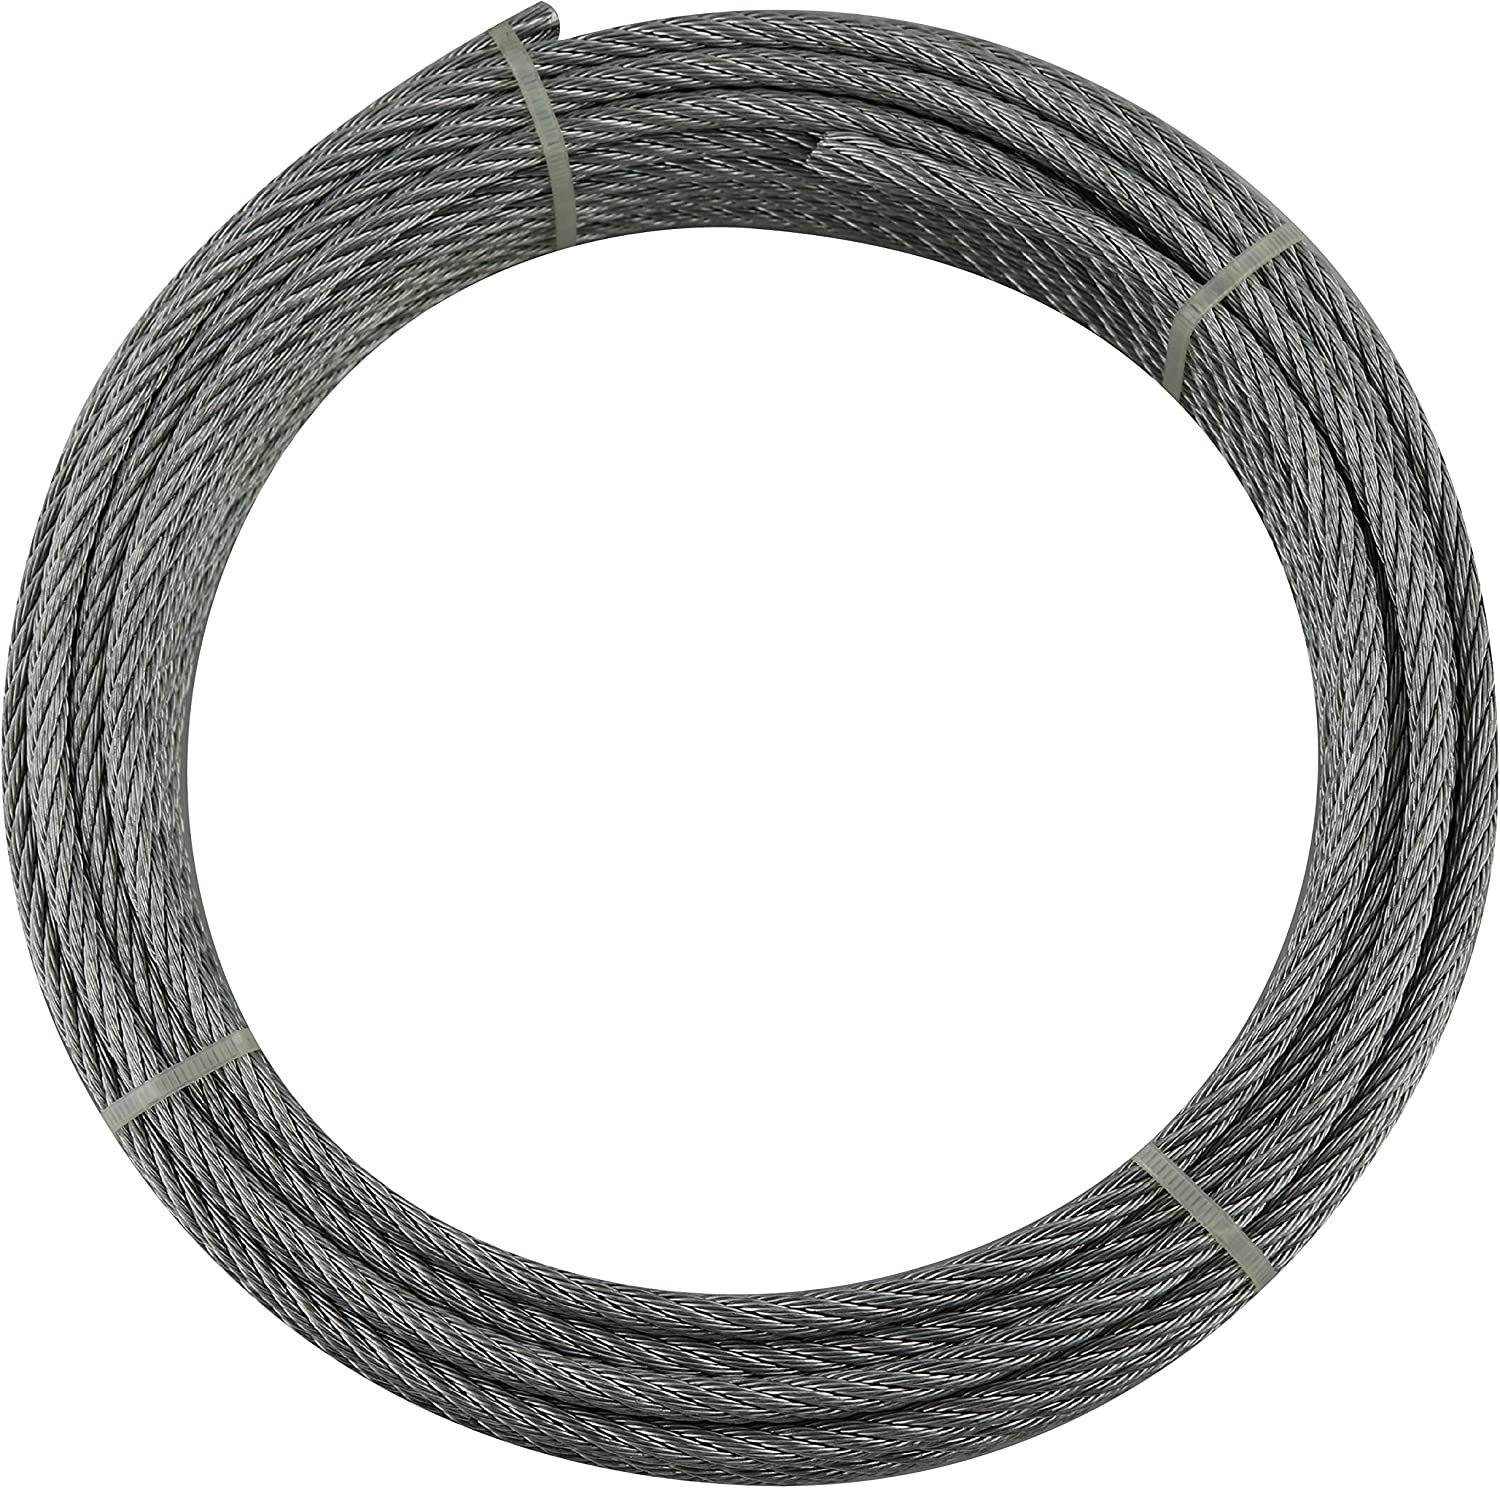 Cables and eslingas y10607r10003/ /Cable 6/x 7/+ 1/3/mm Rolle 100/m galvanised Steel ducting